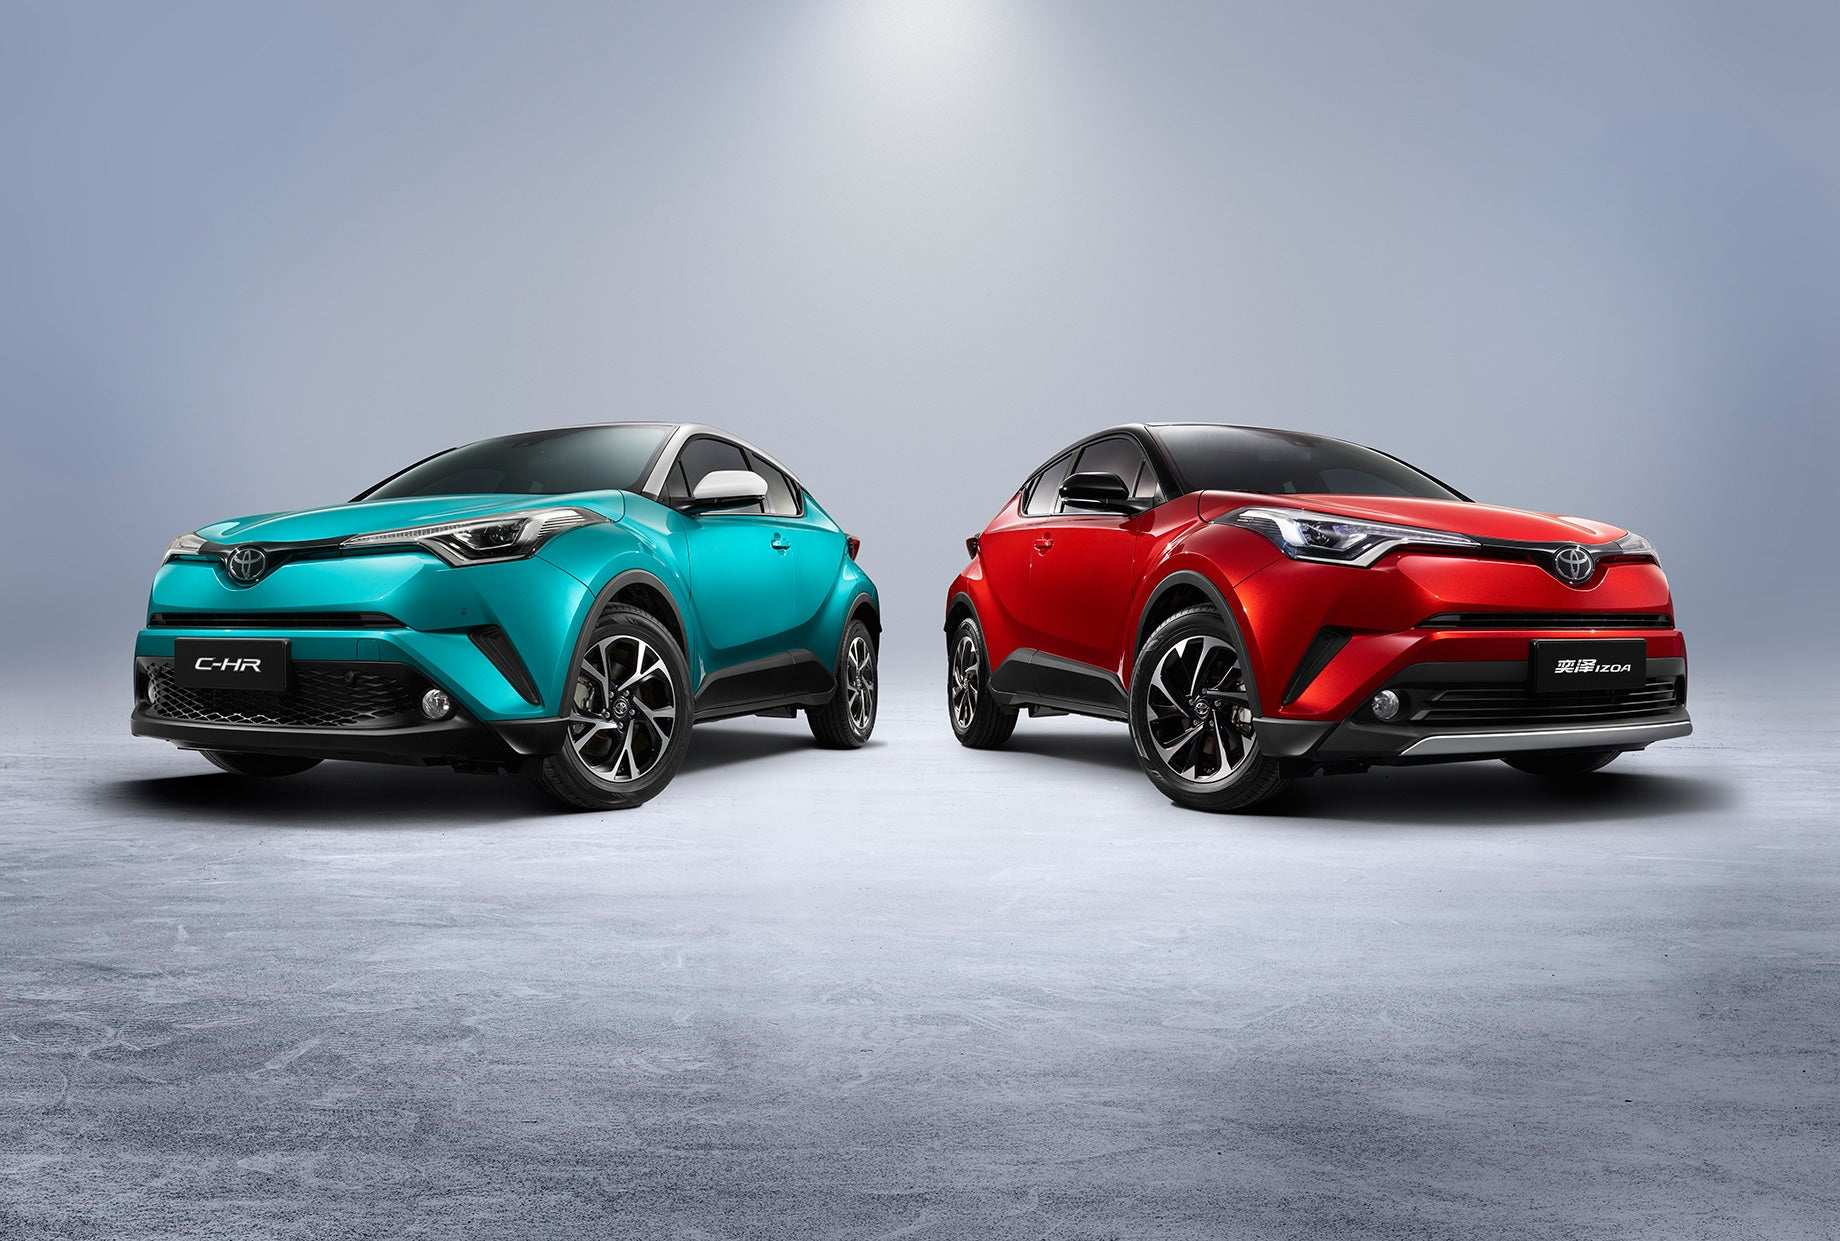 95 New Toyota Bev 2020 Prices by Toyota Bev 2020